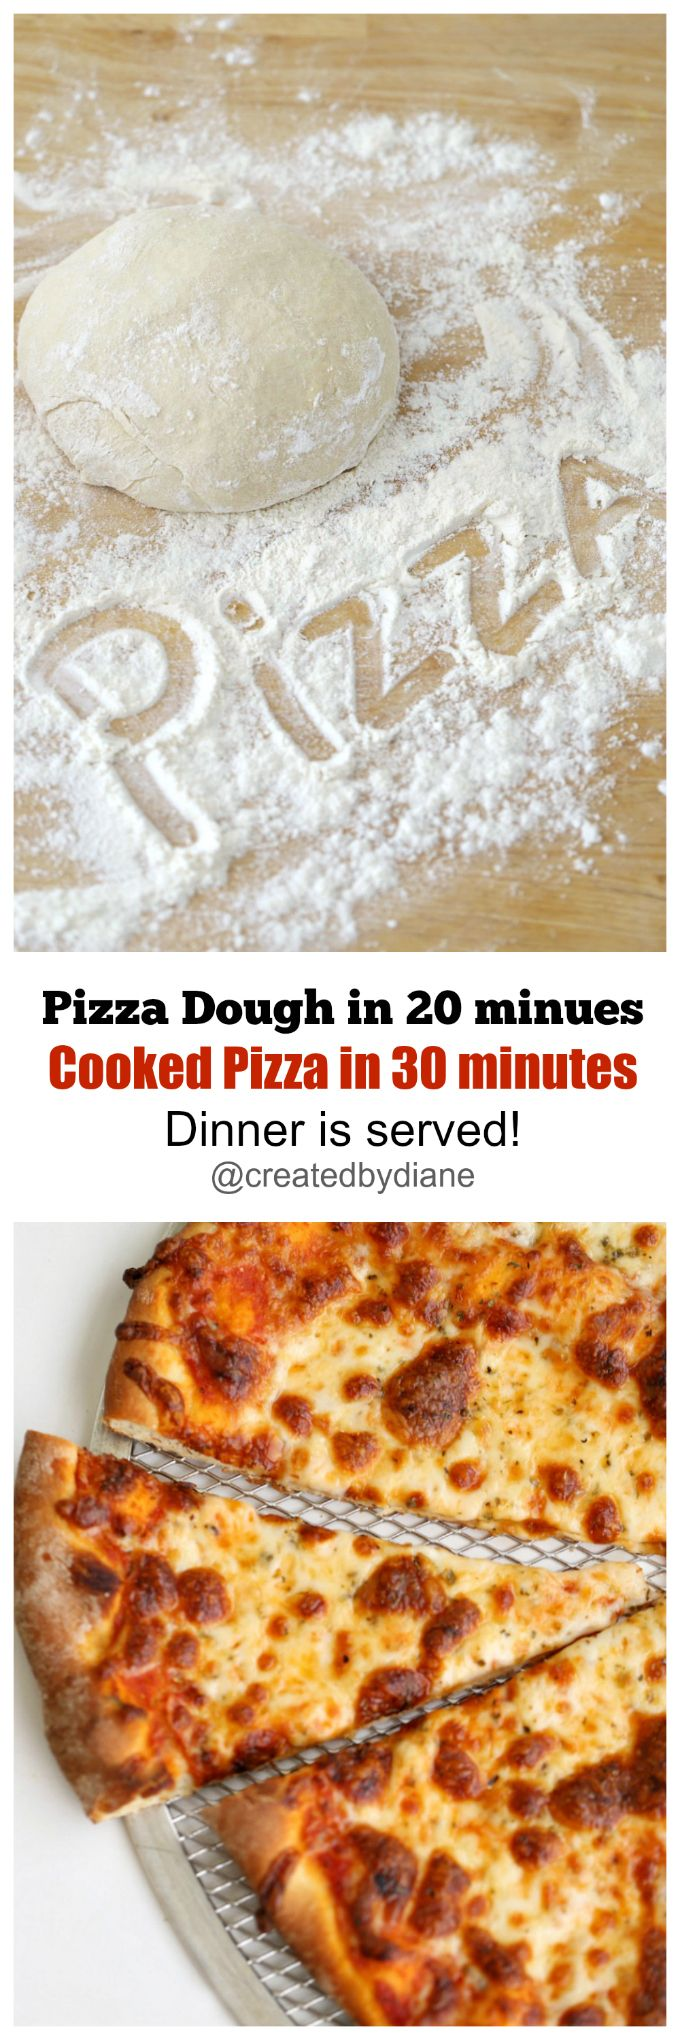 389 best Pizza, Calzones and Stromboli images on Pinterest ...